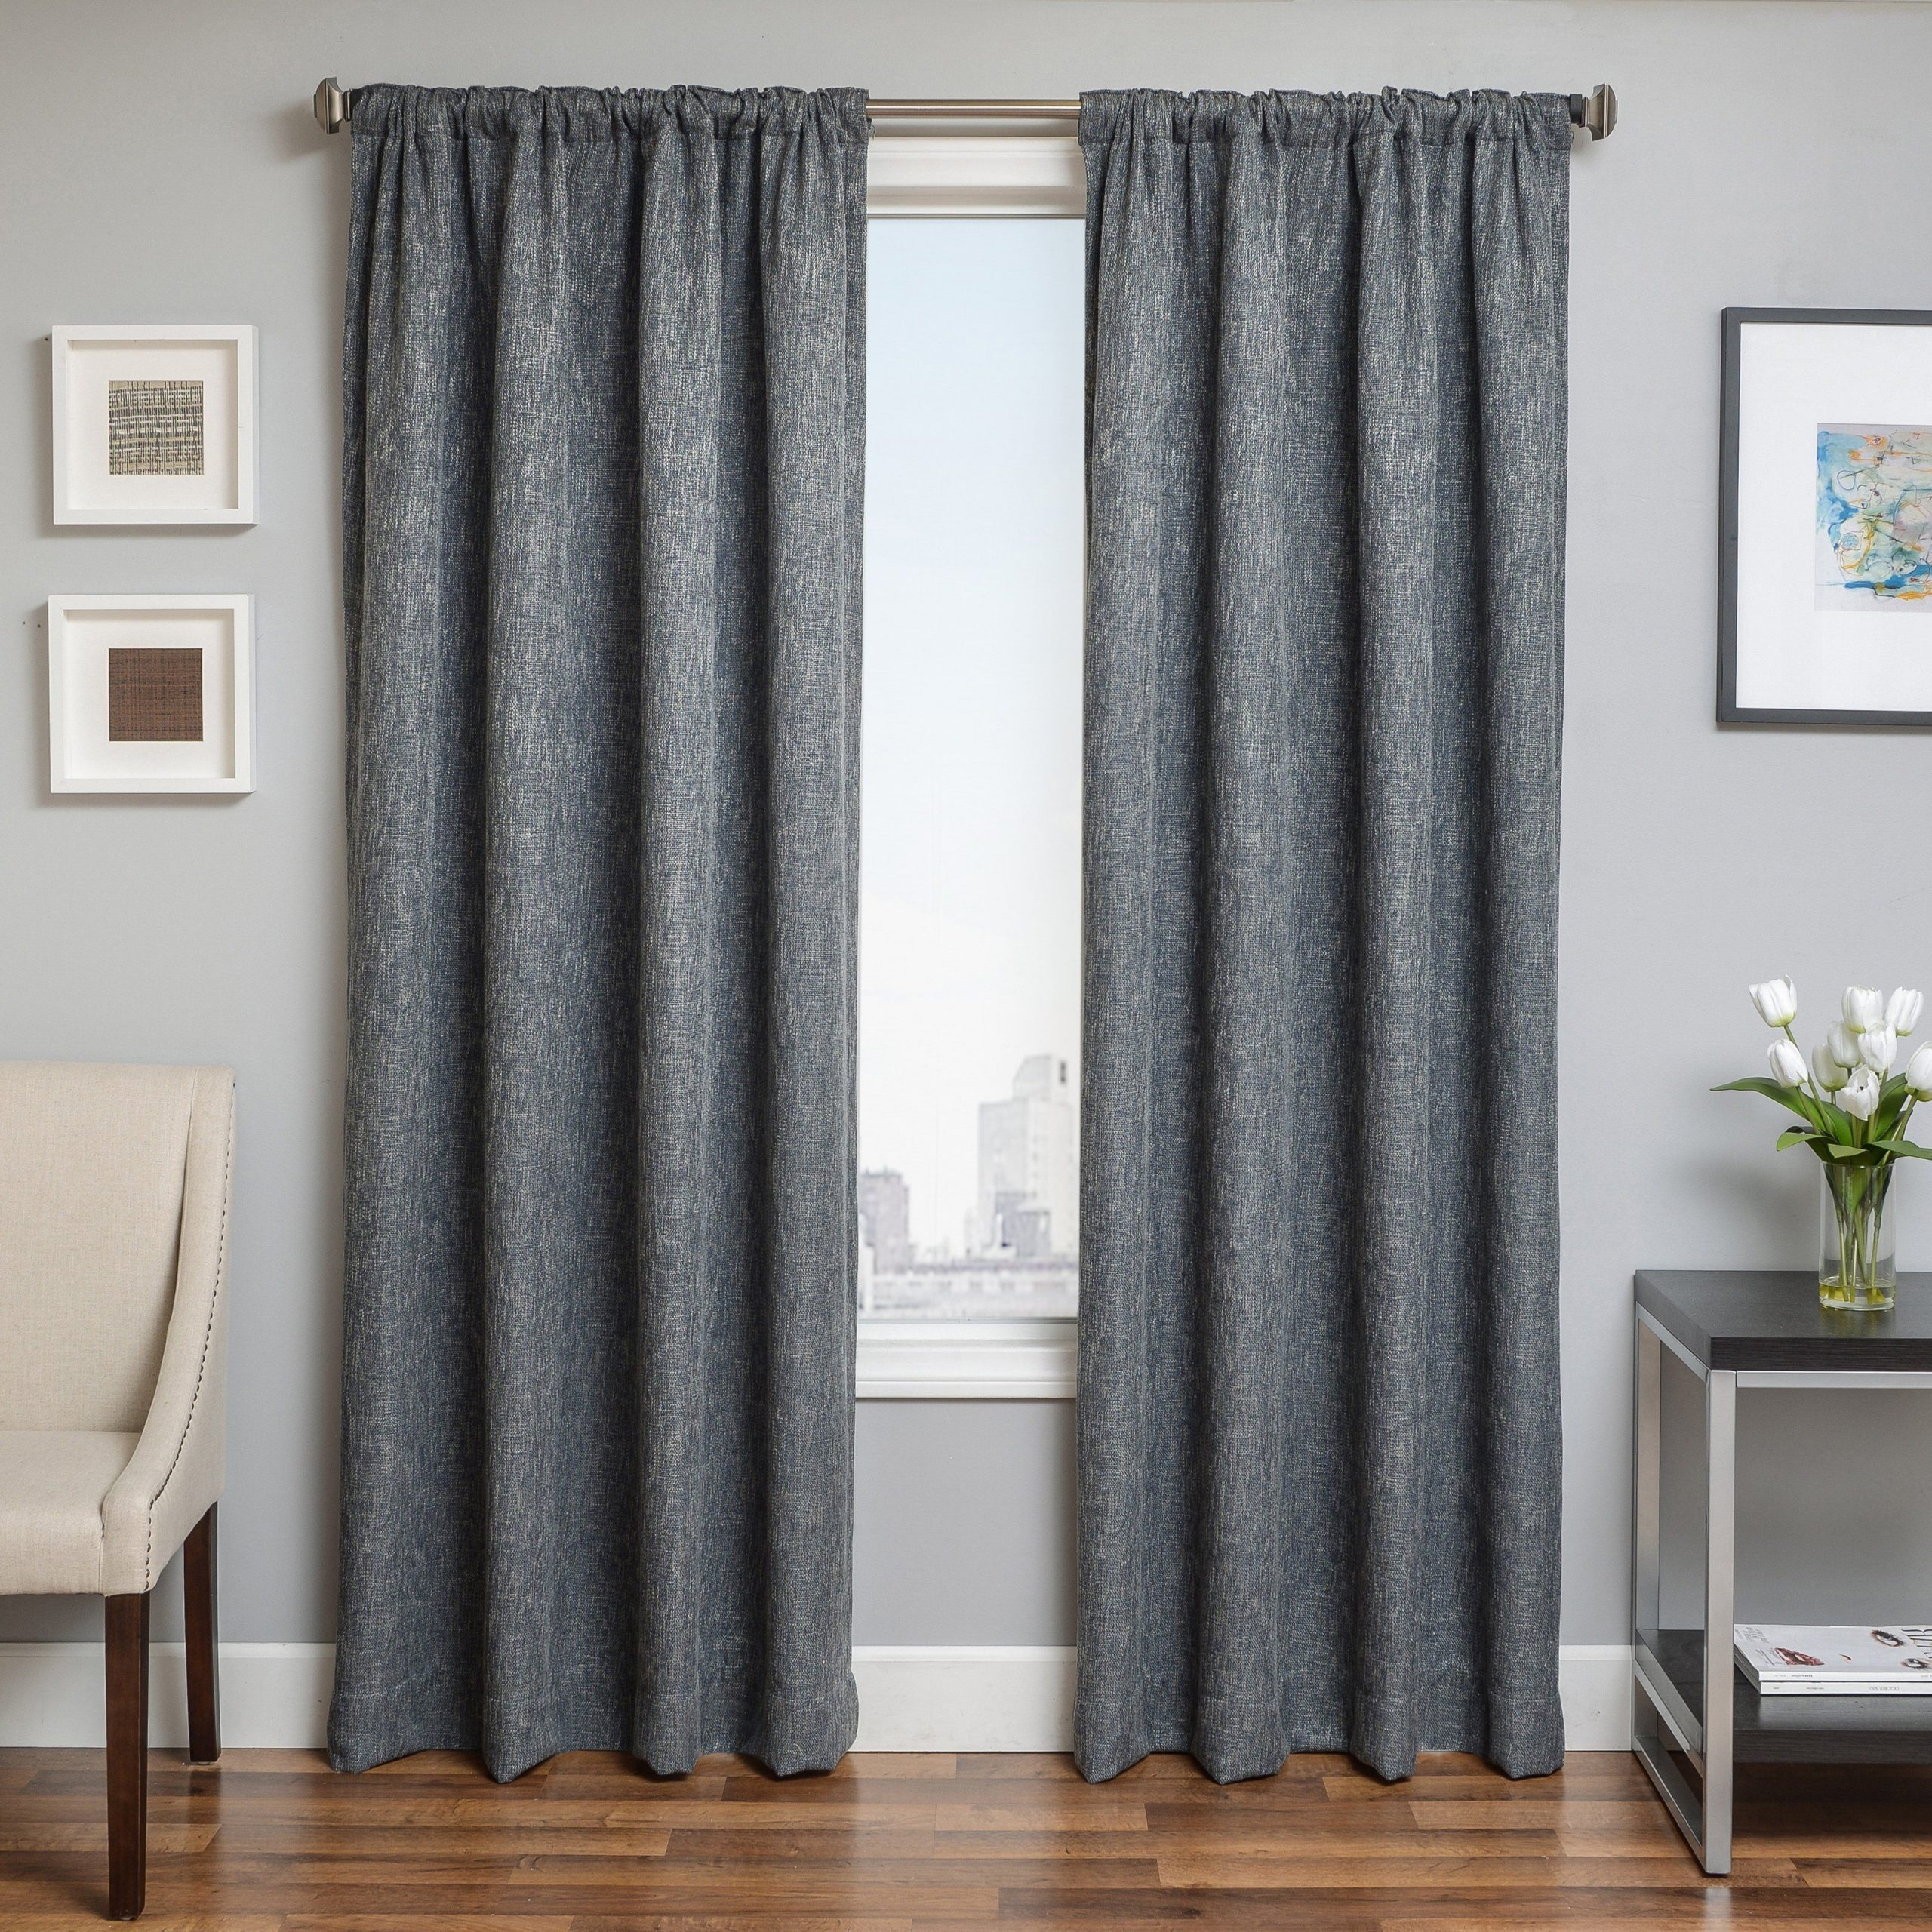 Most Recent Softline Beckman Tweed Rod Pocket Curtain Panel Spa (View 9 of 20)